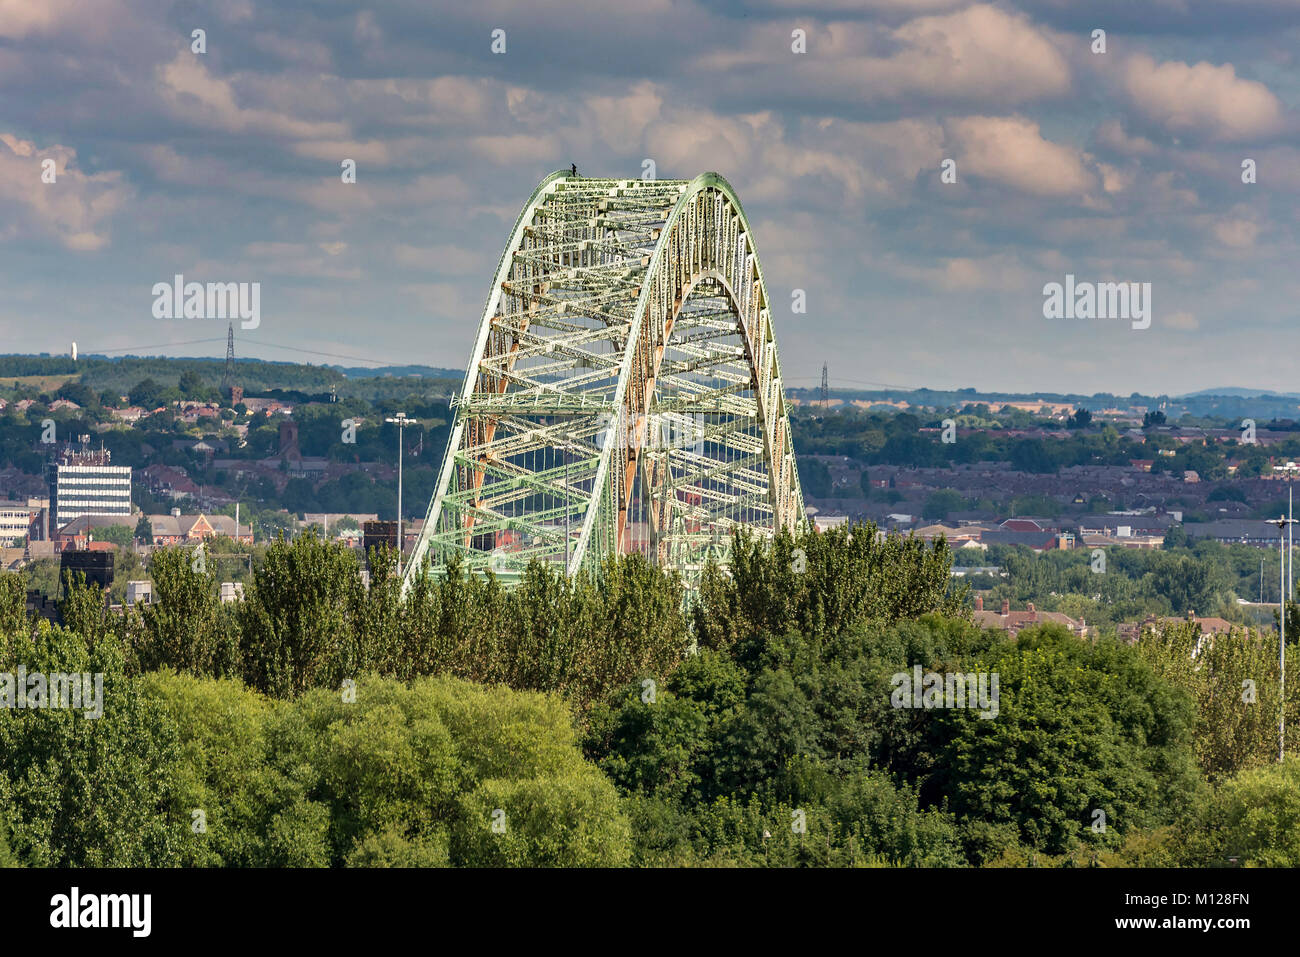 Queensway bridge Runcorn with a man standing on top of the arch. - Stock Image